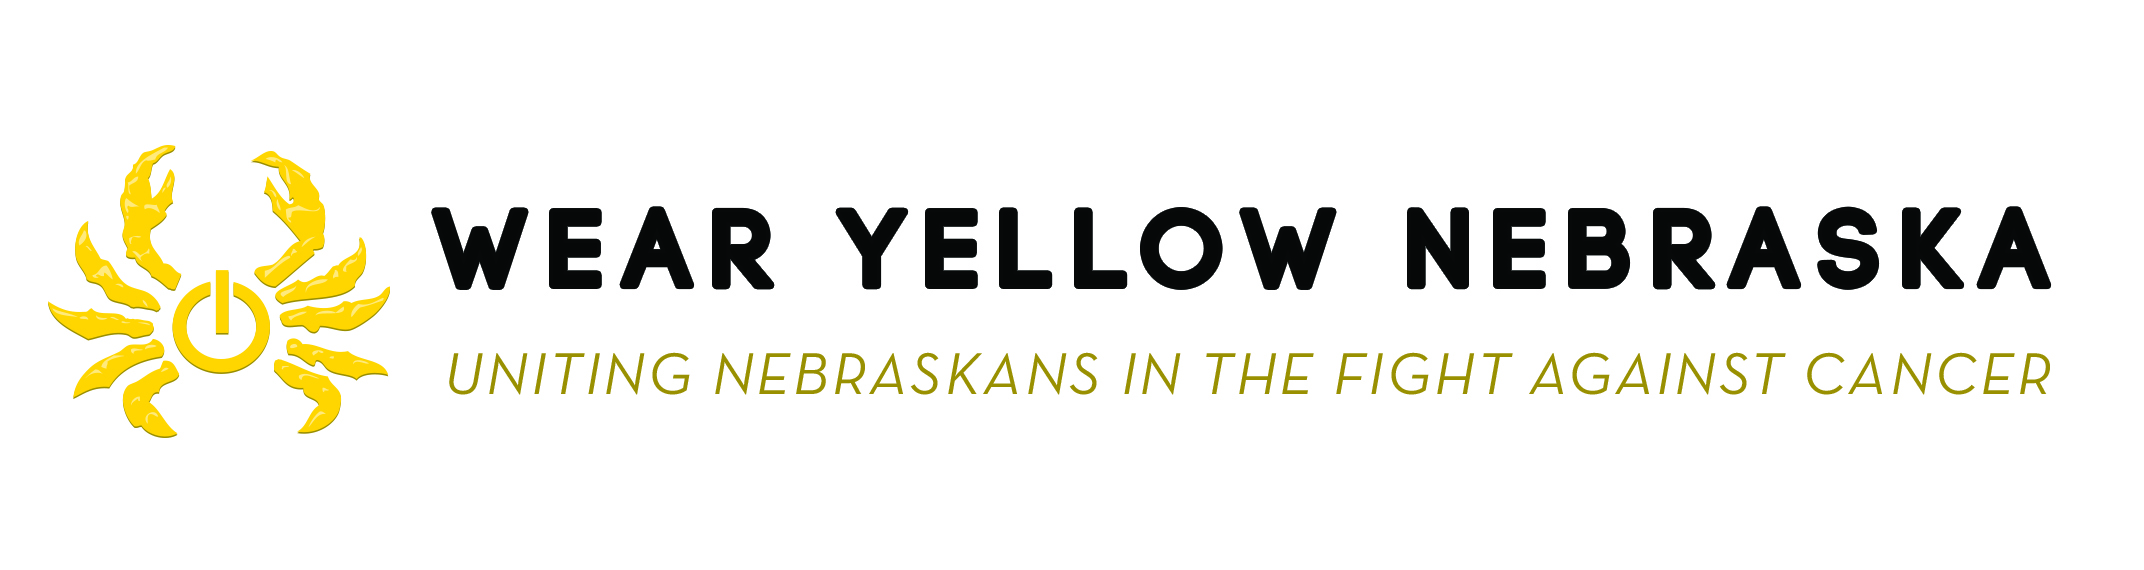 wear yellow - Our purpose from the very beginning was to bring people passionate about cycling together to celebrate life and fight cancer. Your gift directly supports Nebraska's cancer survivors in important ways that may otherwise not be addressed.